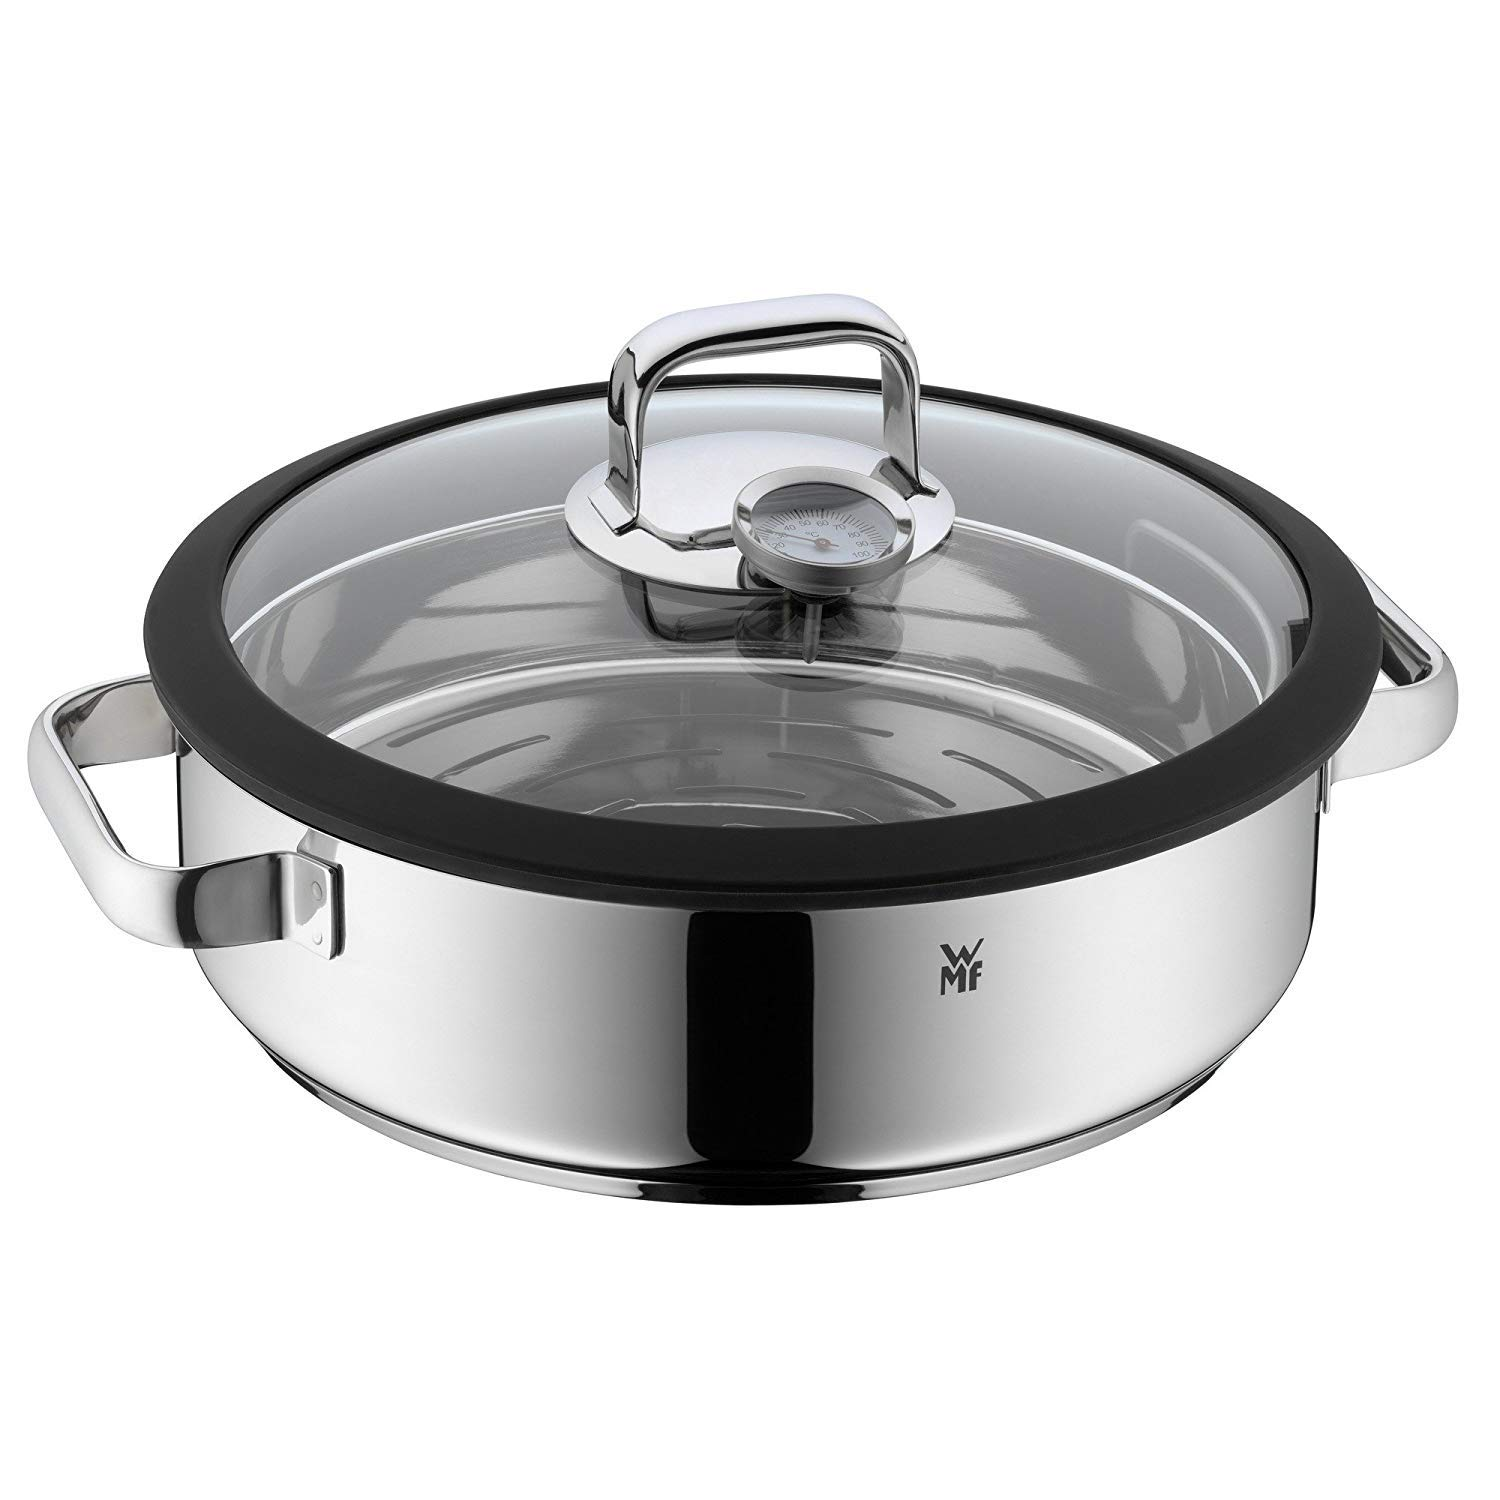 WMF Vitalis Steamer Diameter 28 cm Height Approximately 5L Polished Stainless Steel/Glass Lid with Silicone Rim and Thermometer Garblech Cromargan Dishwasher-Safe Suitable for Induction Cookers